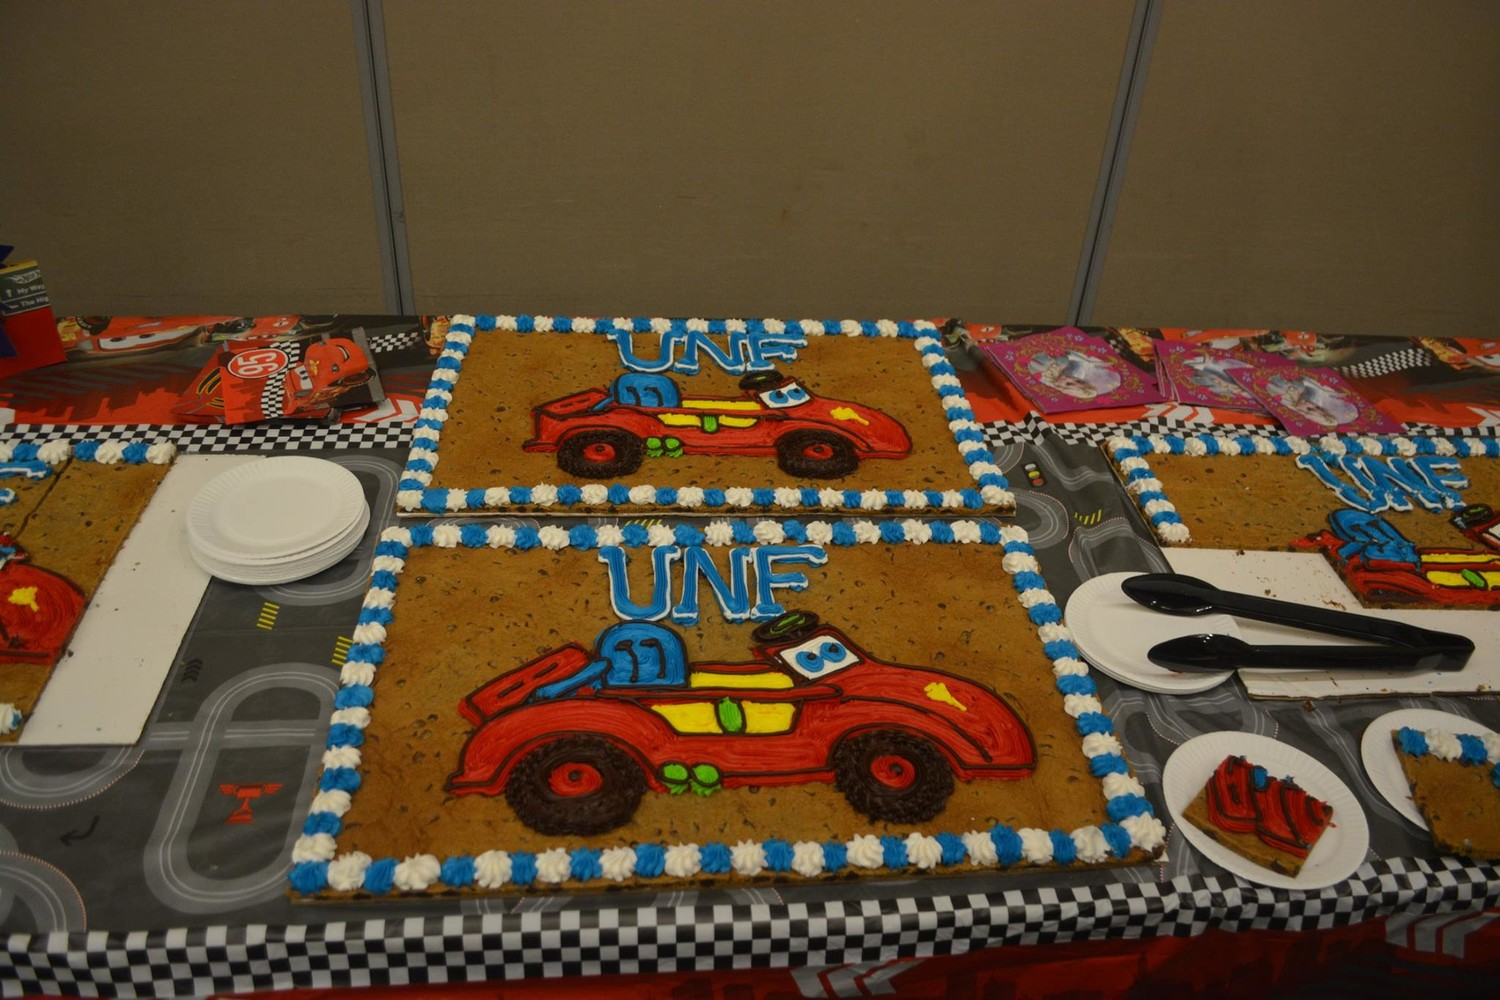 An Adoptive Toy Project-themed cake is displayed at the event.